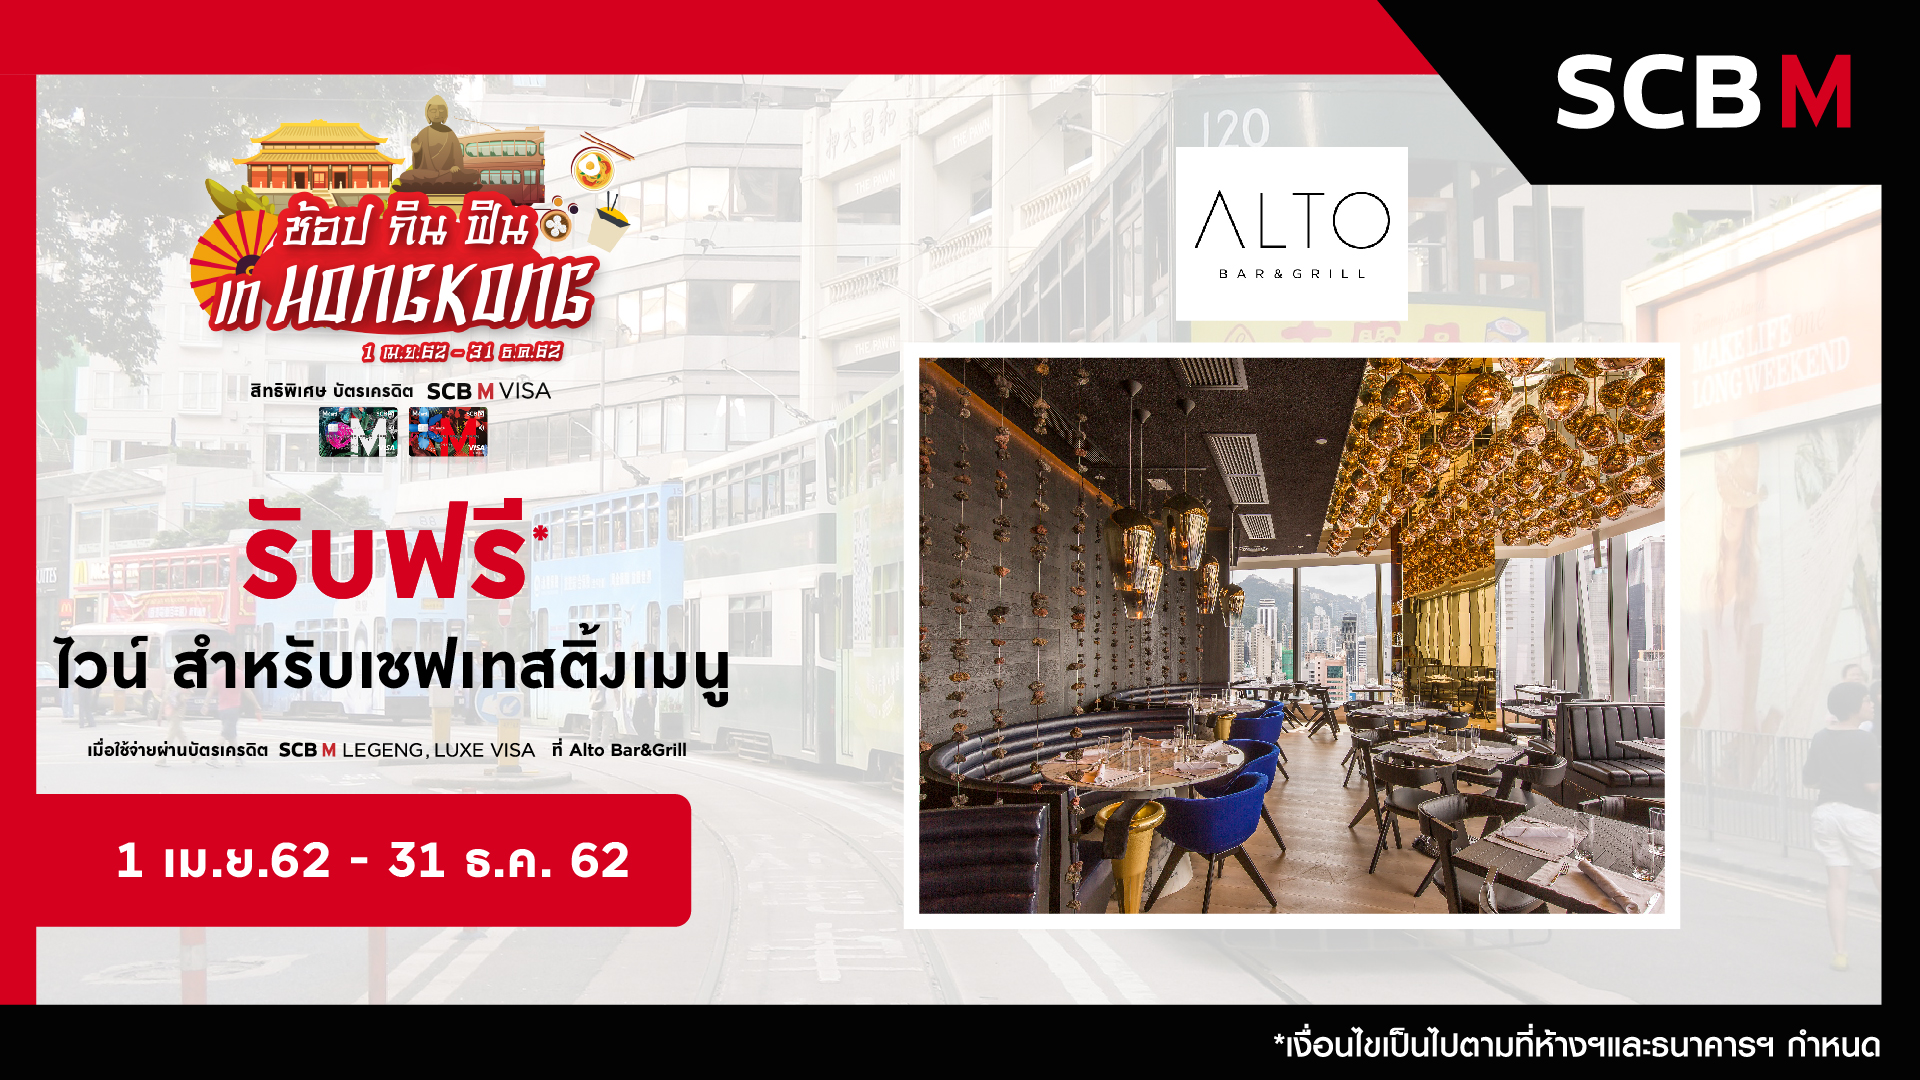 Complimentary wine-pairing of Chef Tasting Menu at ALTO Bar & Grill